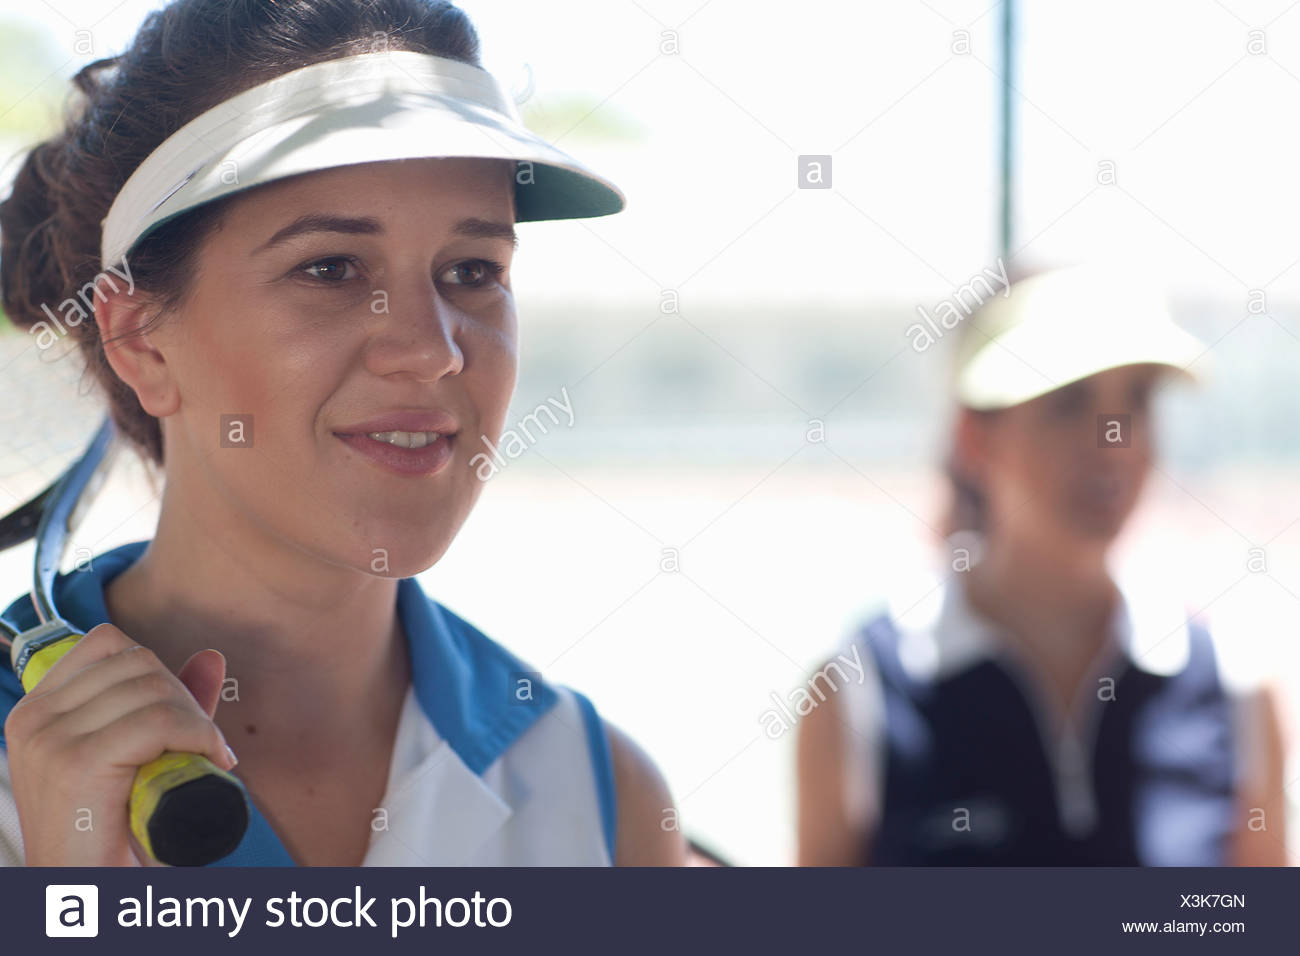 Tennis players observing - Stock Image